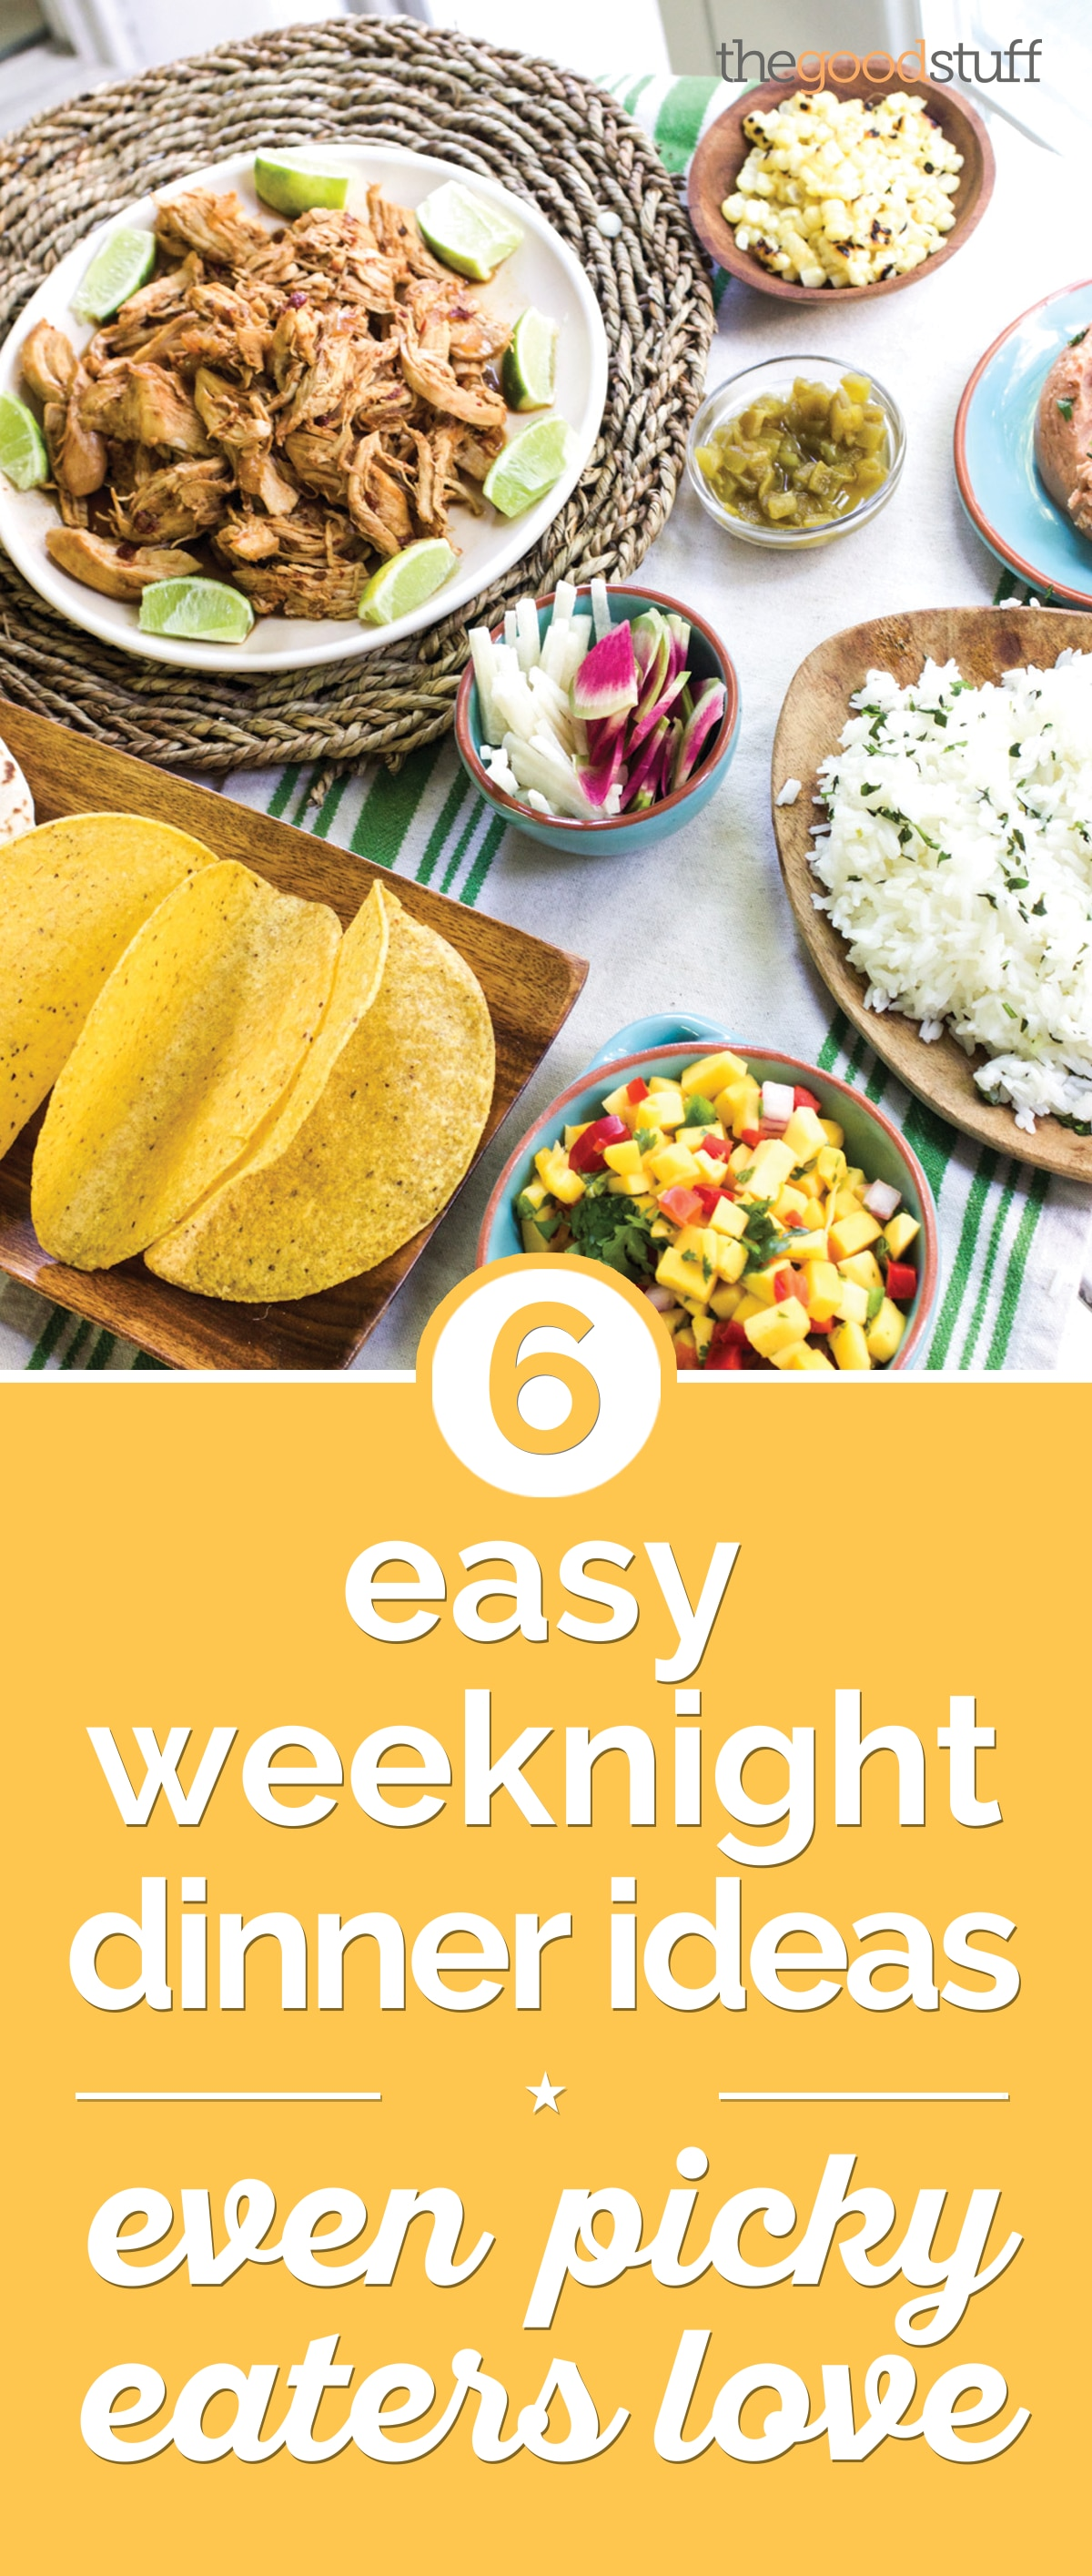 6 Easy Weeknight Dinner Ideas Even Picky Eaters Love | thegoodstuff